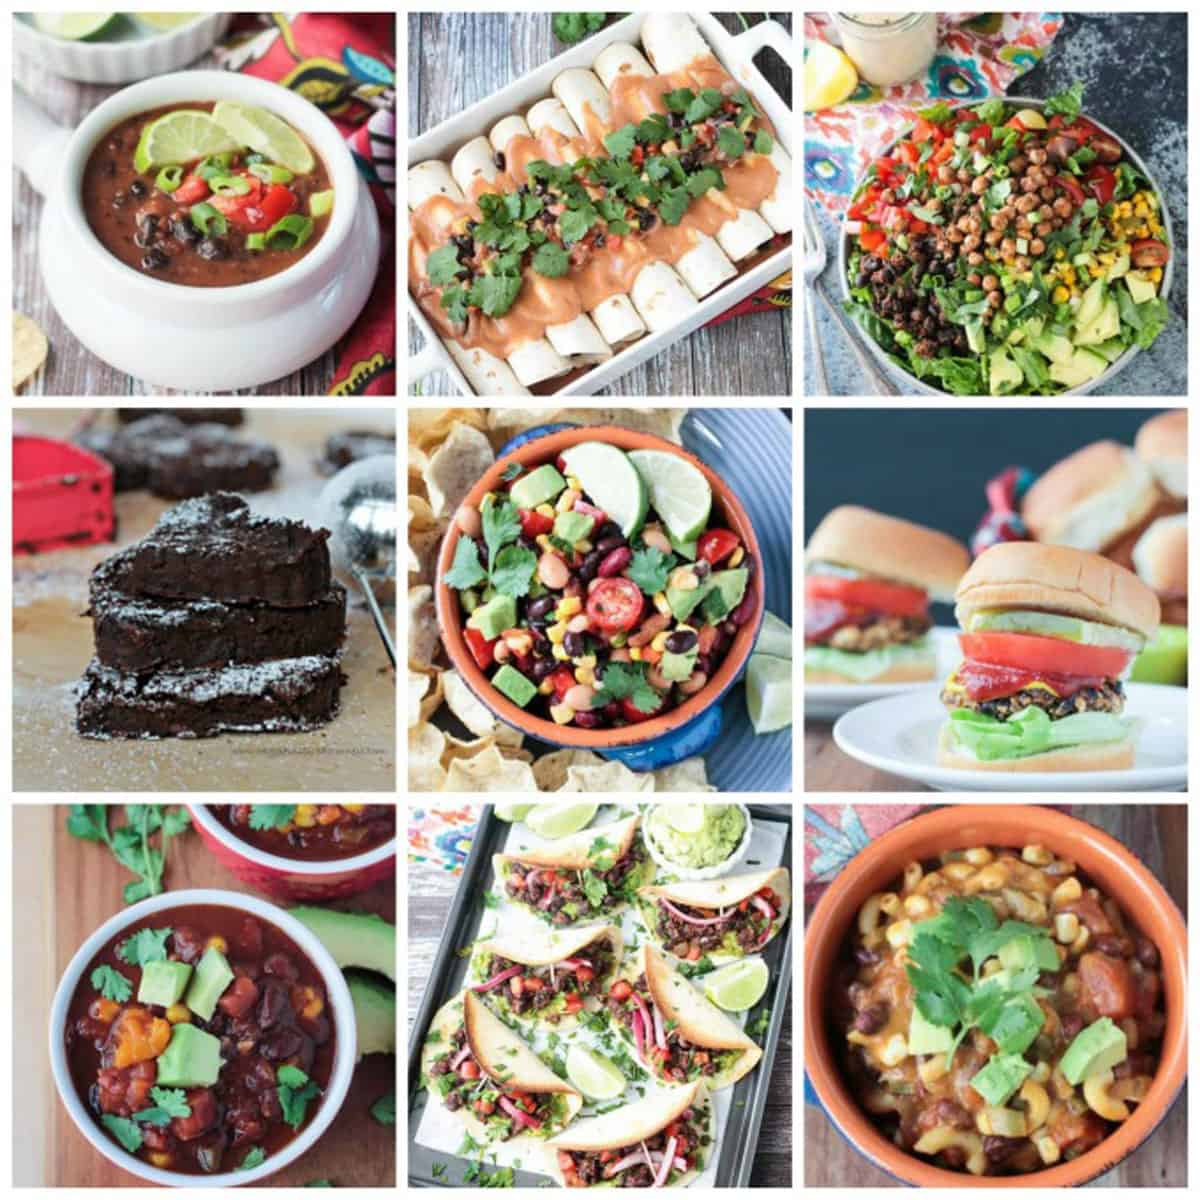 9-photo collage of a variety of recipes with black beans.